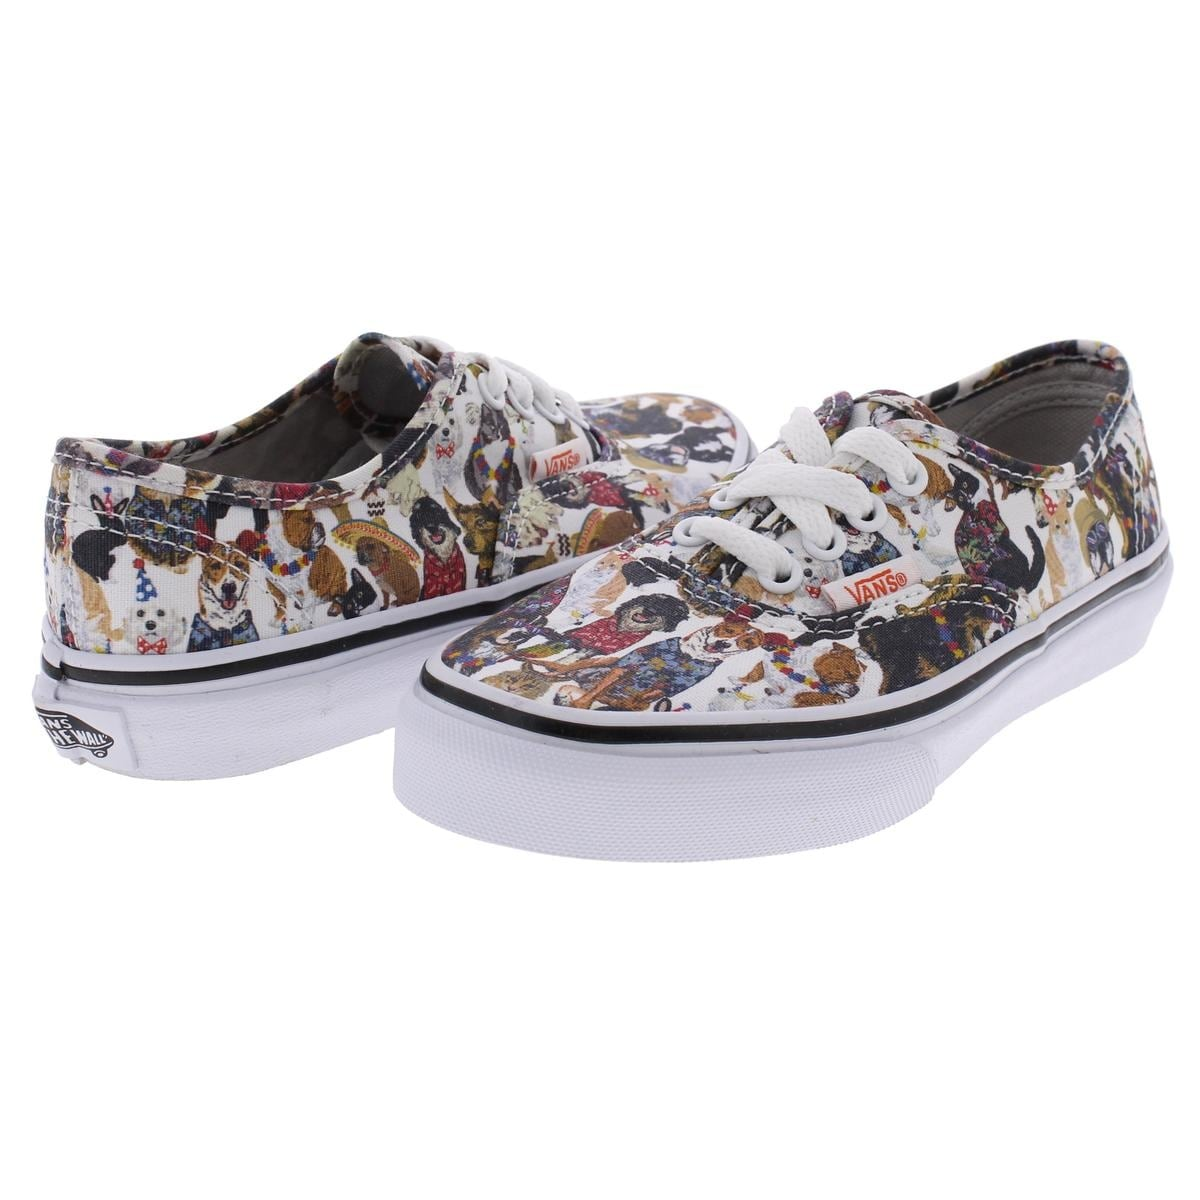 83d215aa4c Shop Vans Boys ASPCA Skate Shoes Dogs Cats - Ships To Canada - Overstock -  20546025